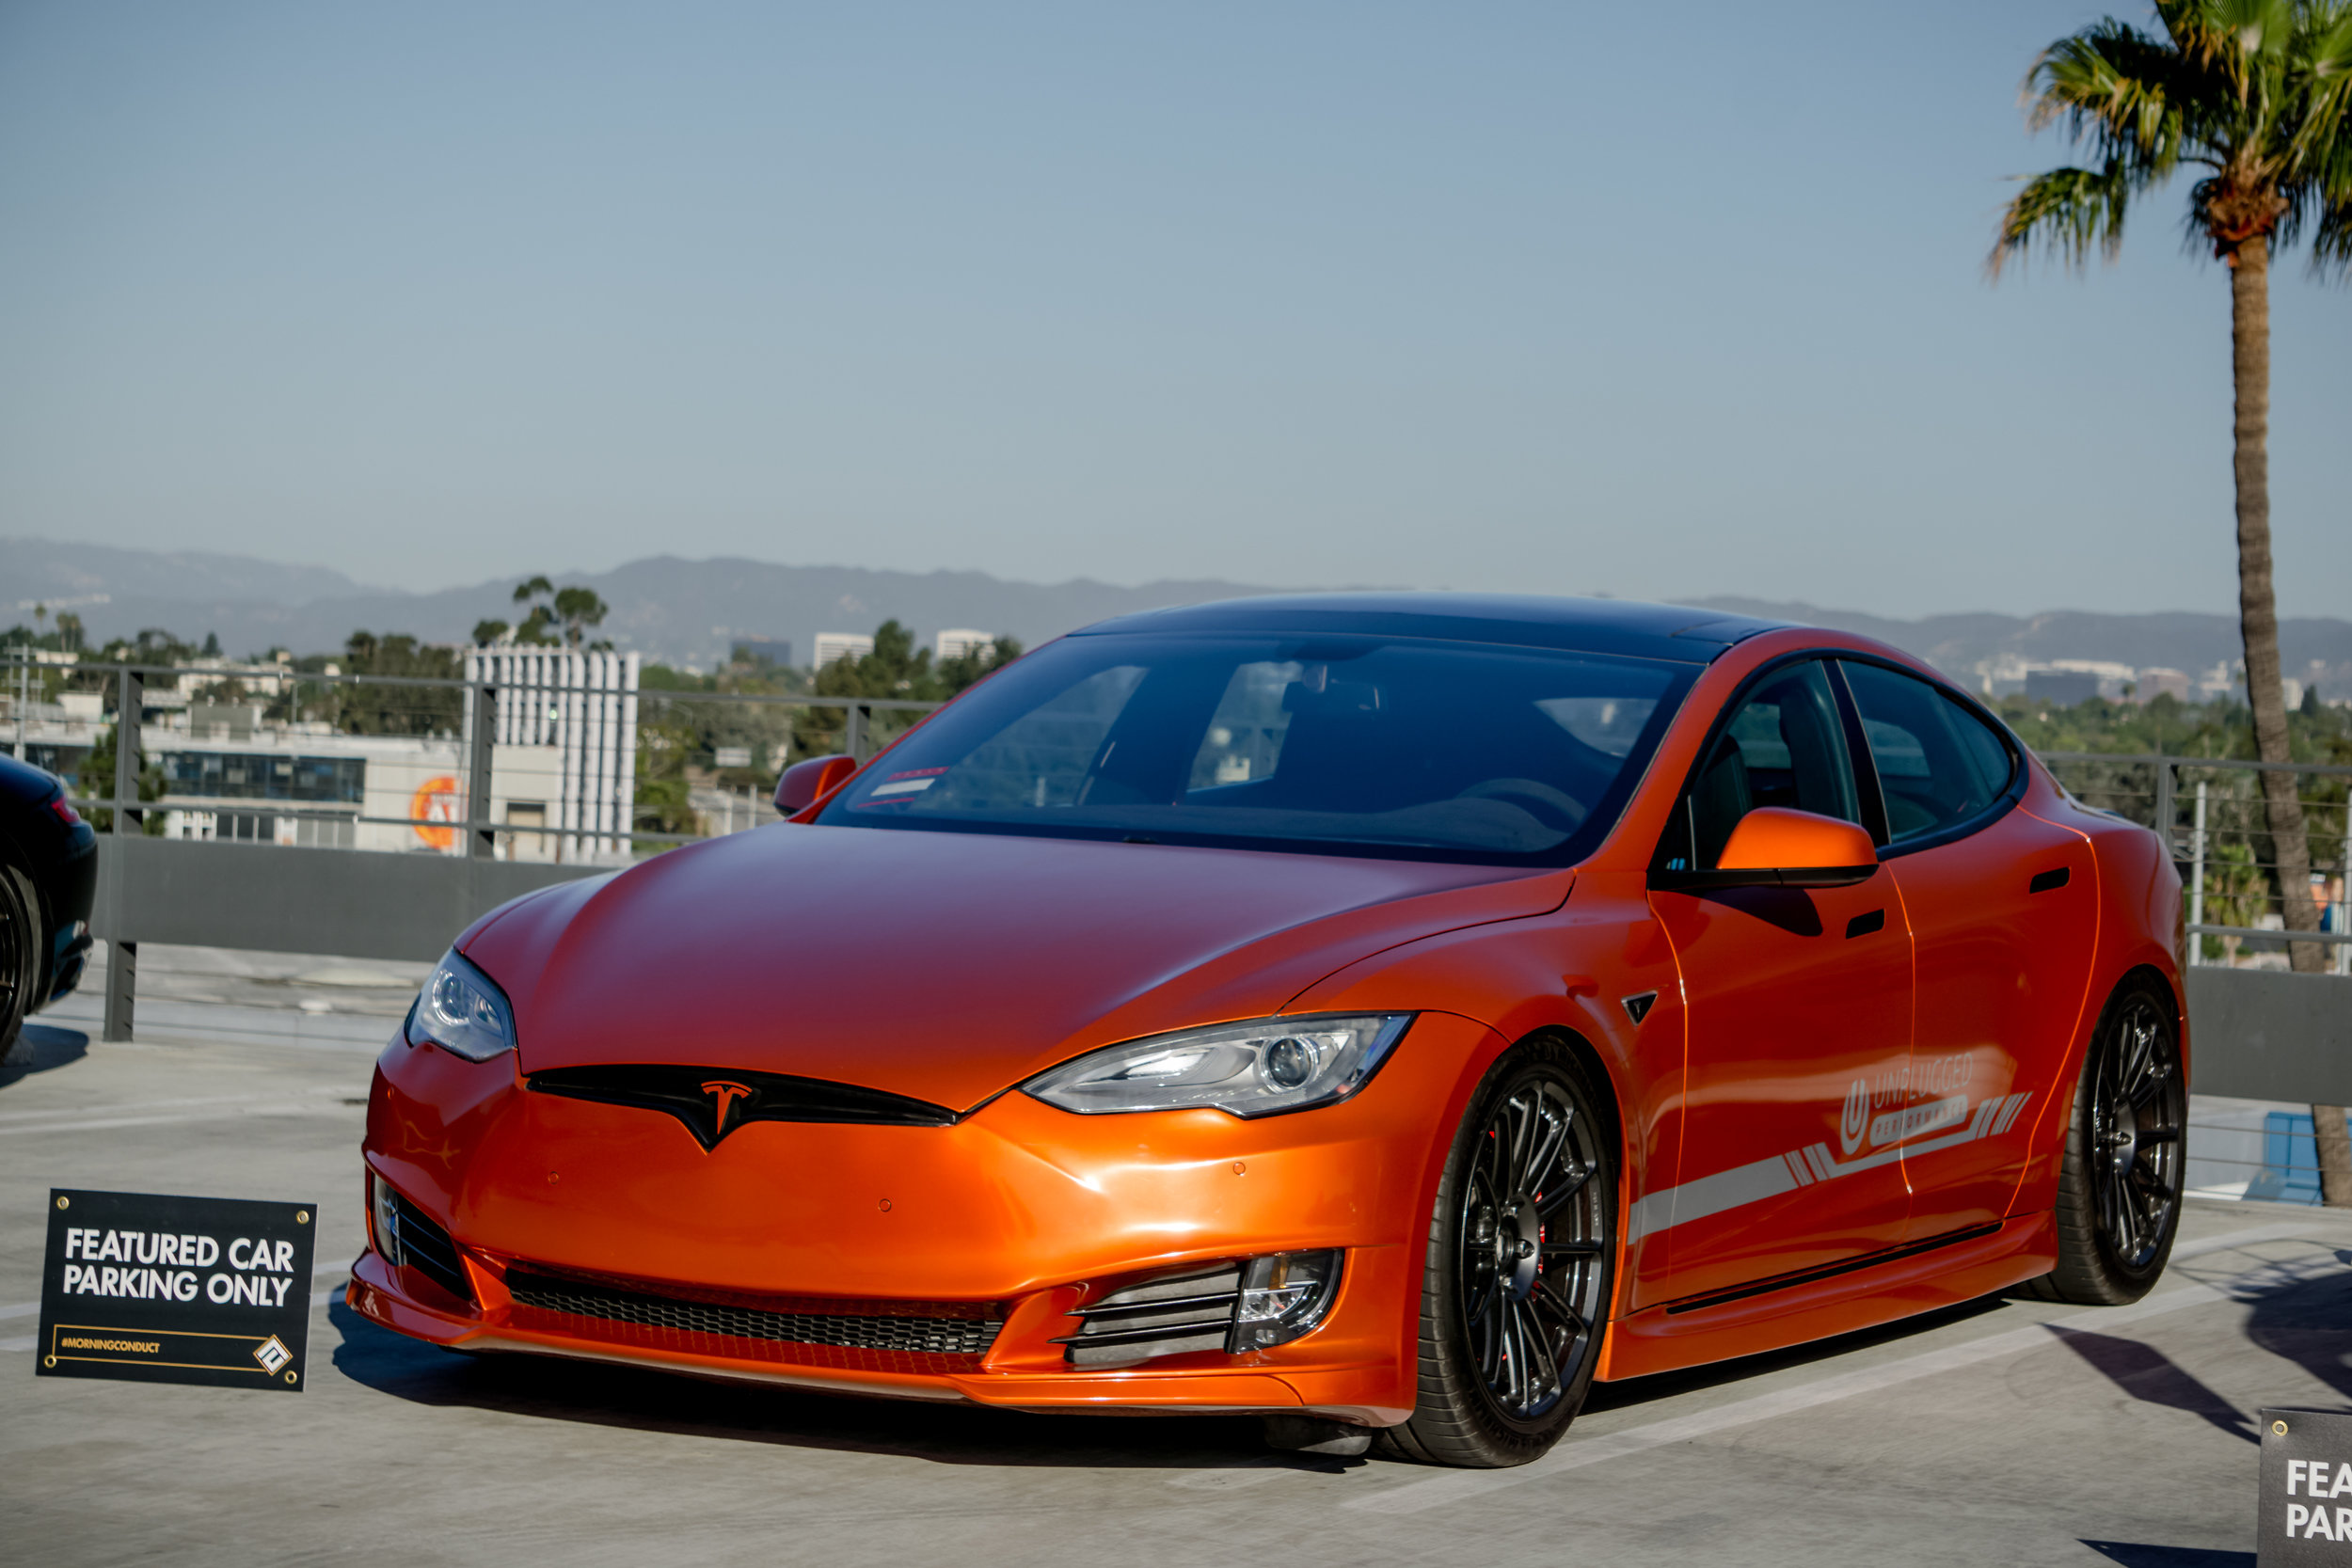 Ben S. Uplugged Performance Tesla Model S